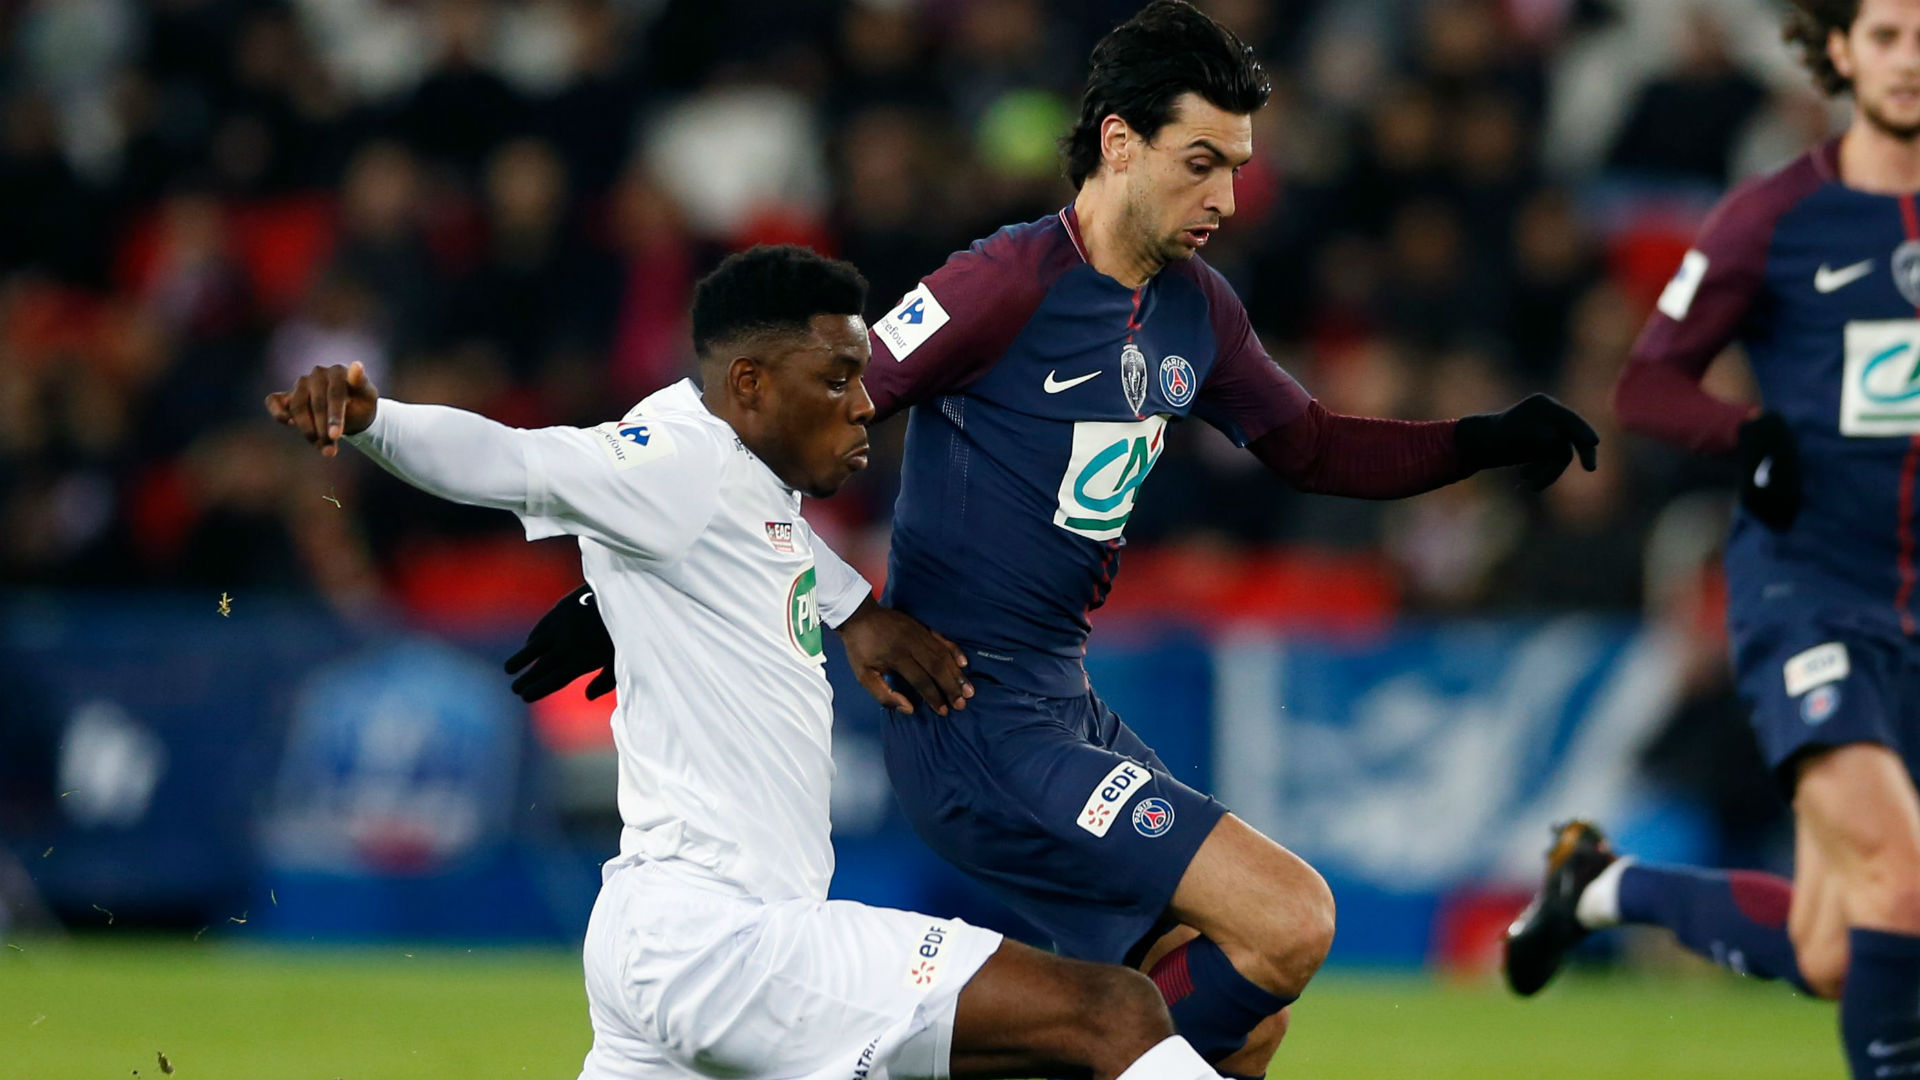 Javier Pastore PSG Guingamp Coupe de France 24012018